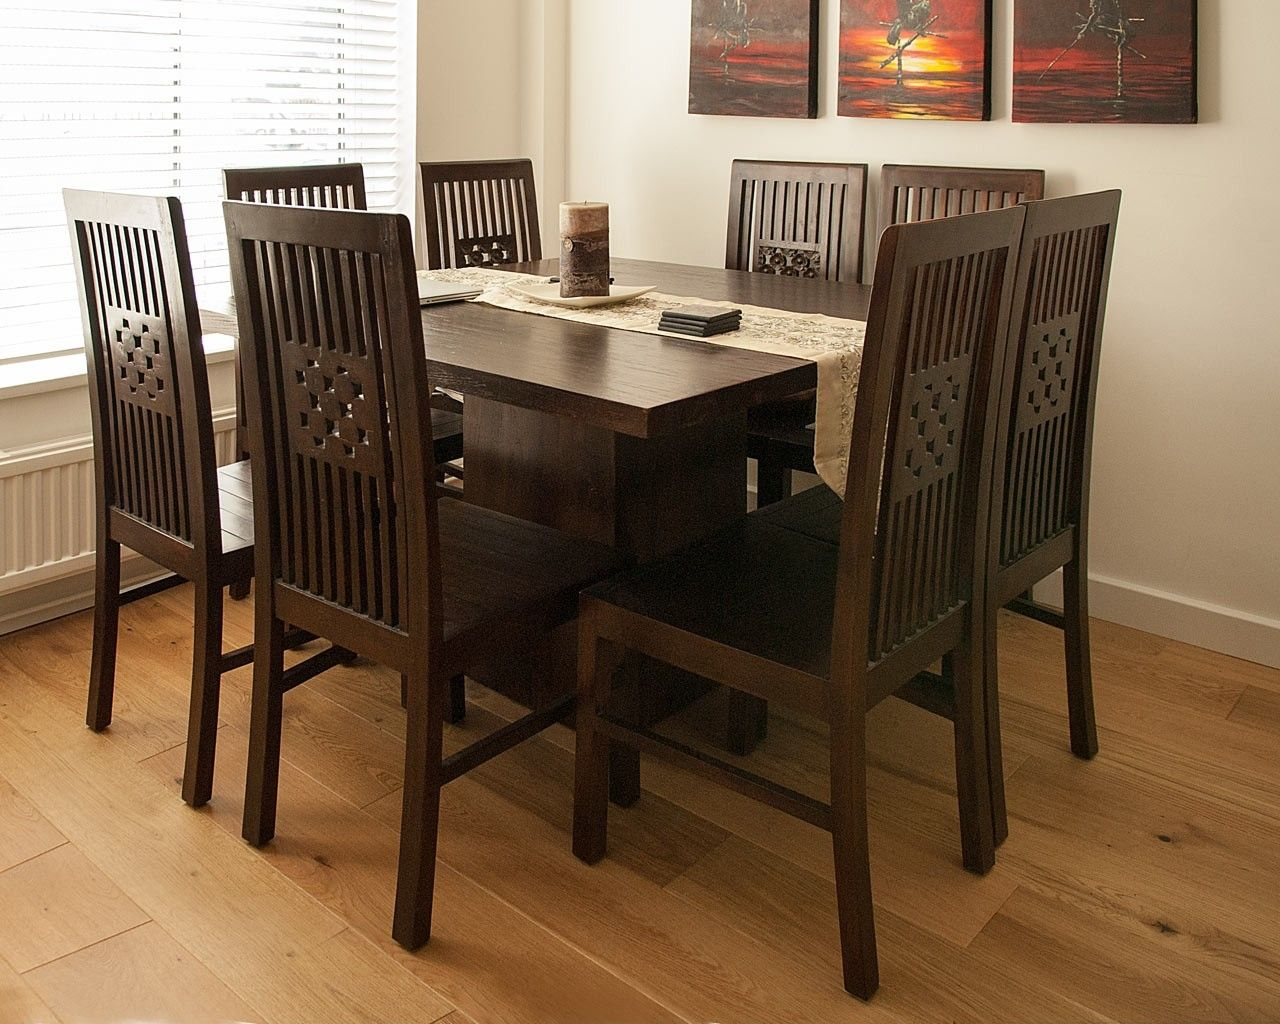 Henry Dark Flora Chair   An Elegant And Stylish Wooden Dining Chair That  Has A Beautiful Hand Carved Floral Design In The Centre. This Dark Teak  Dining ...